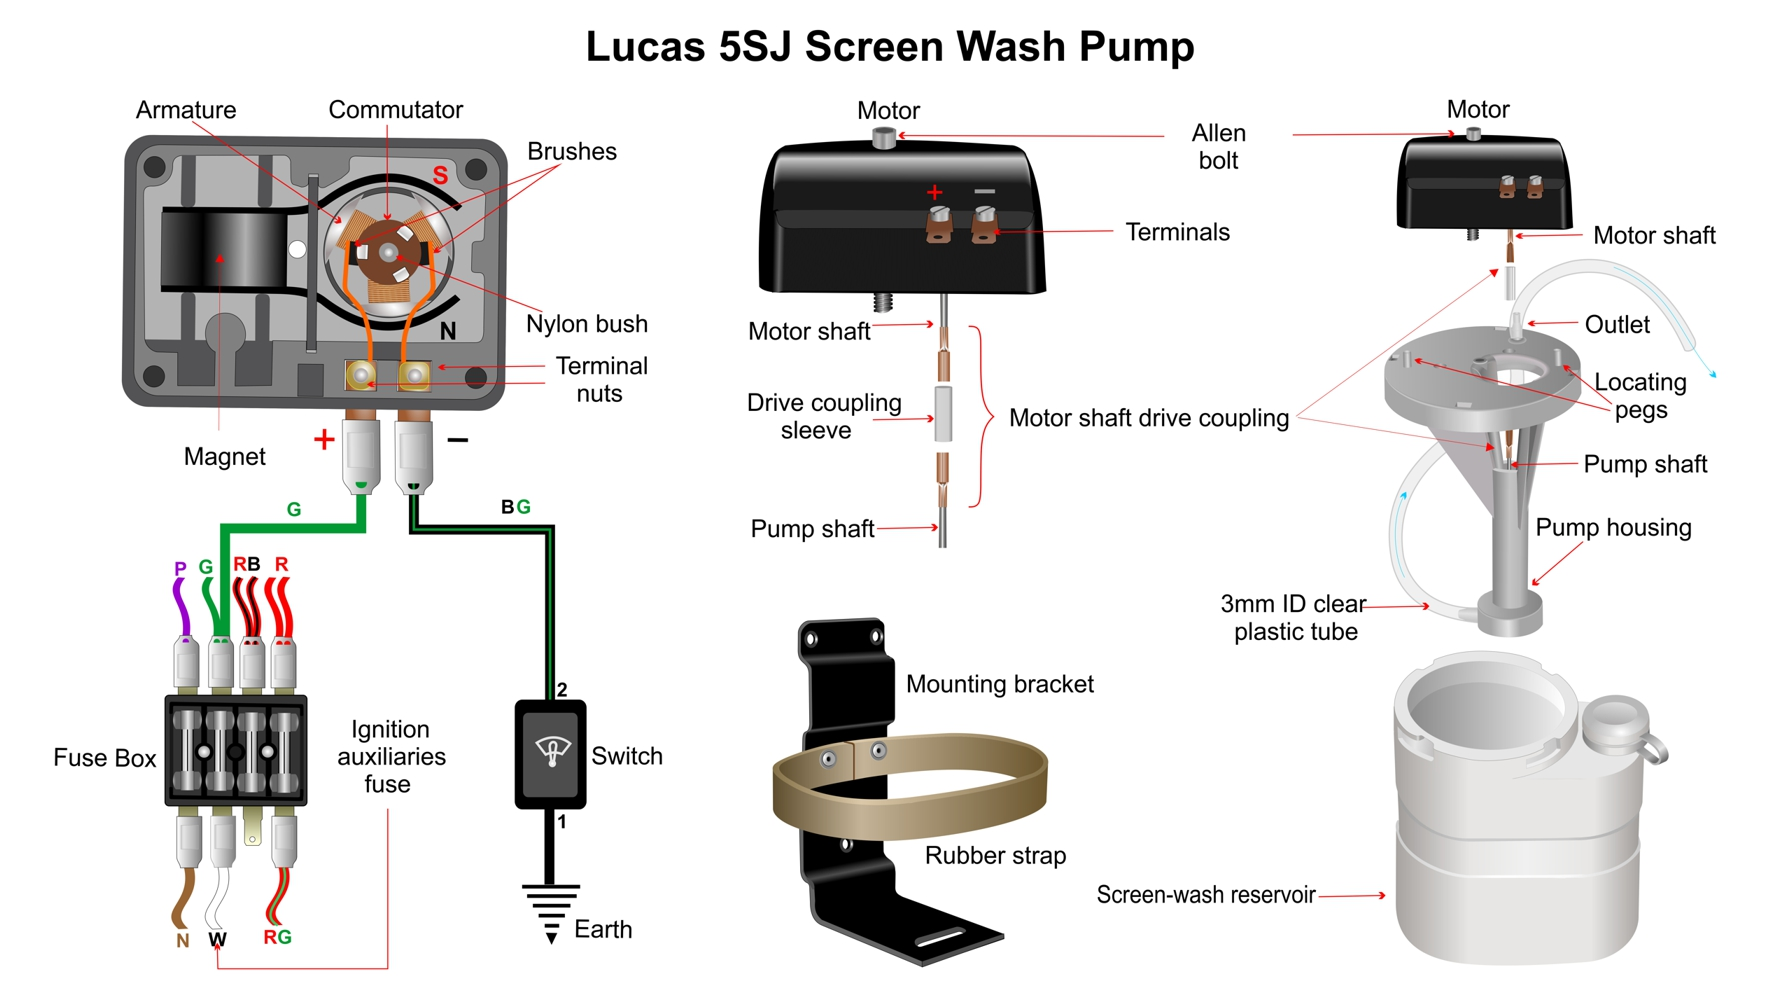 Lucas5SG Wash Wipe Pump